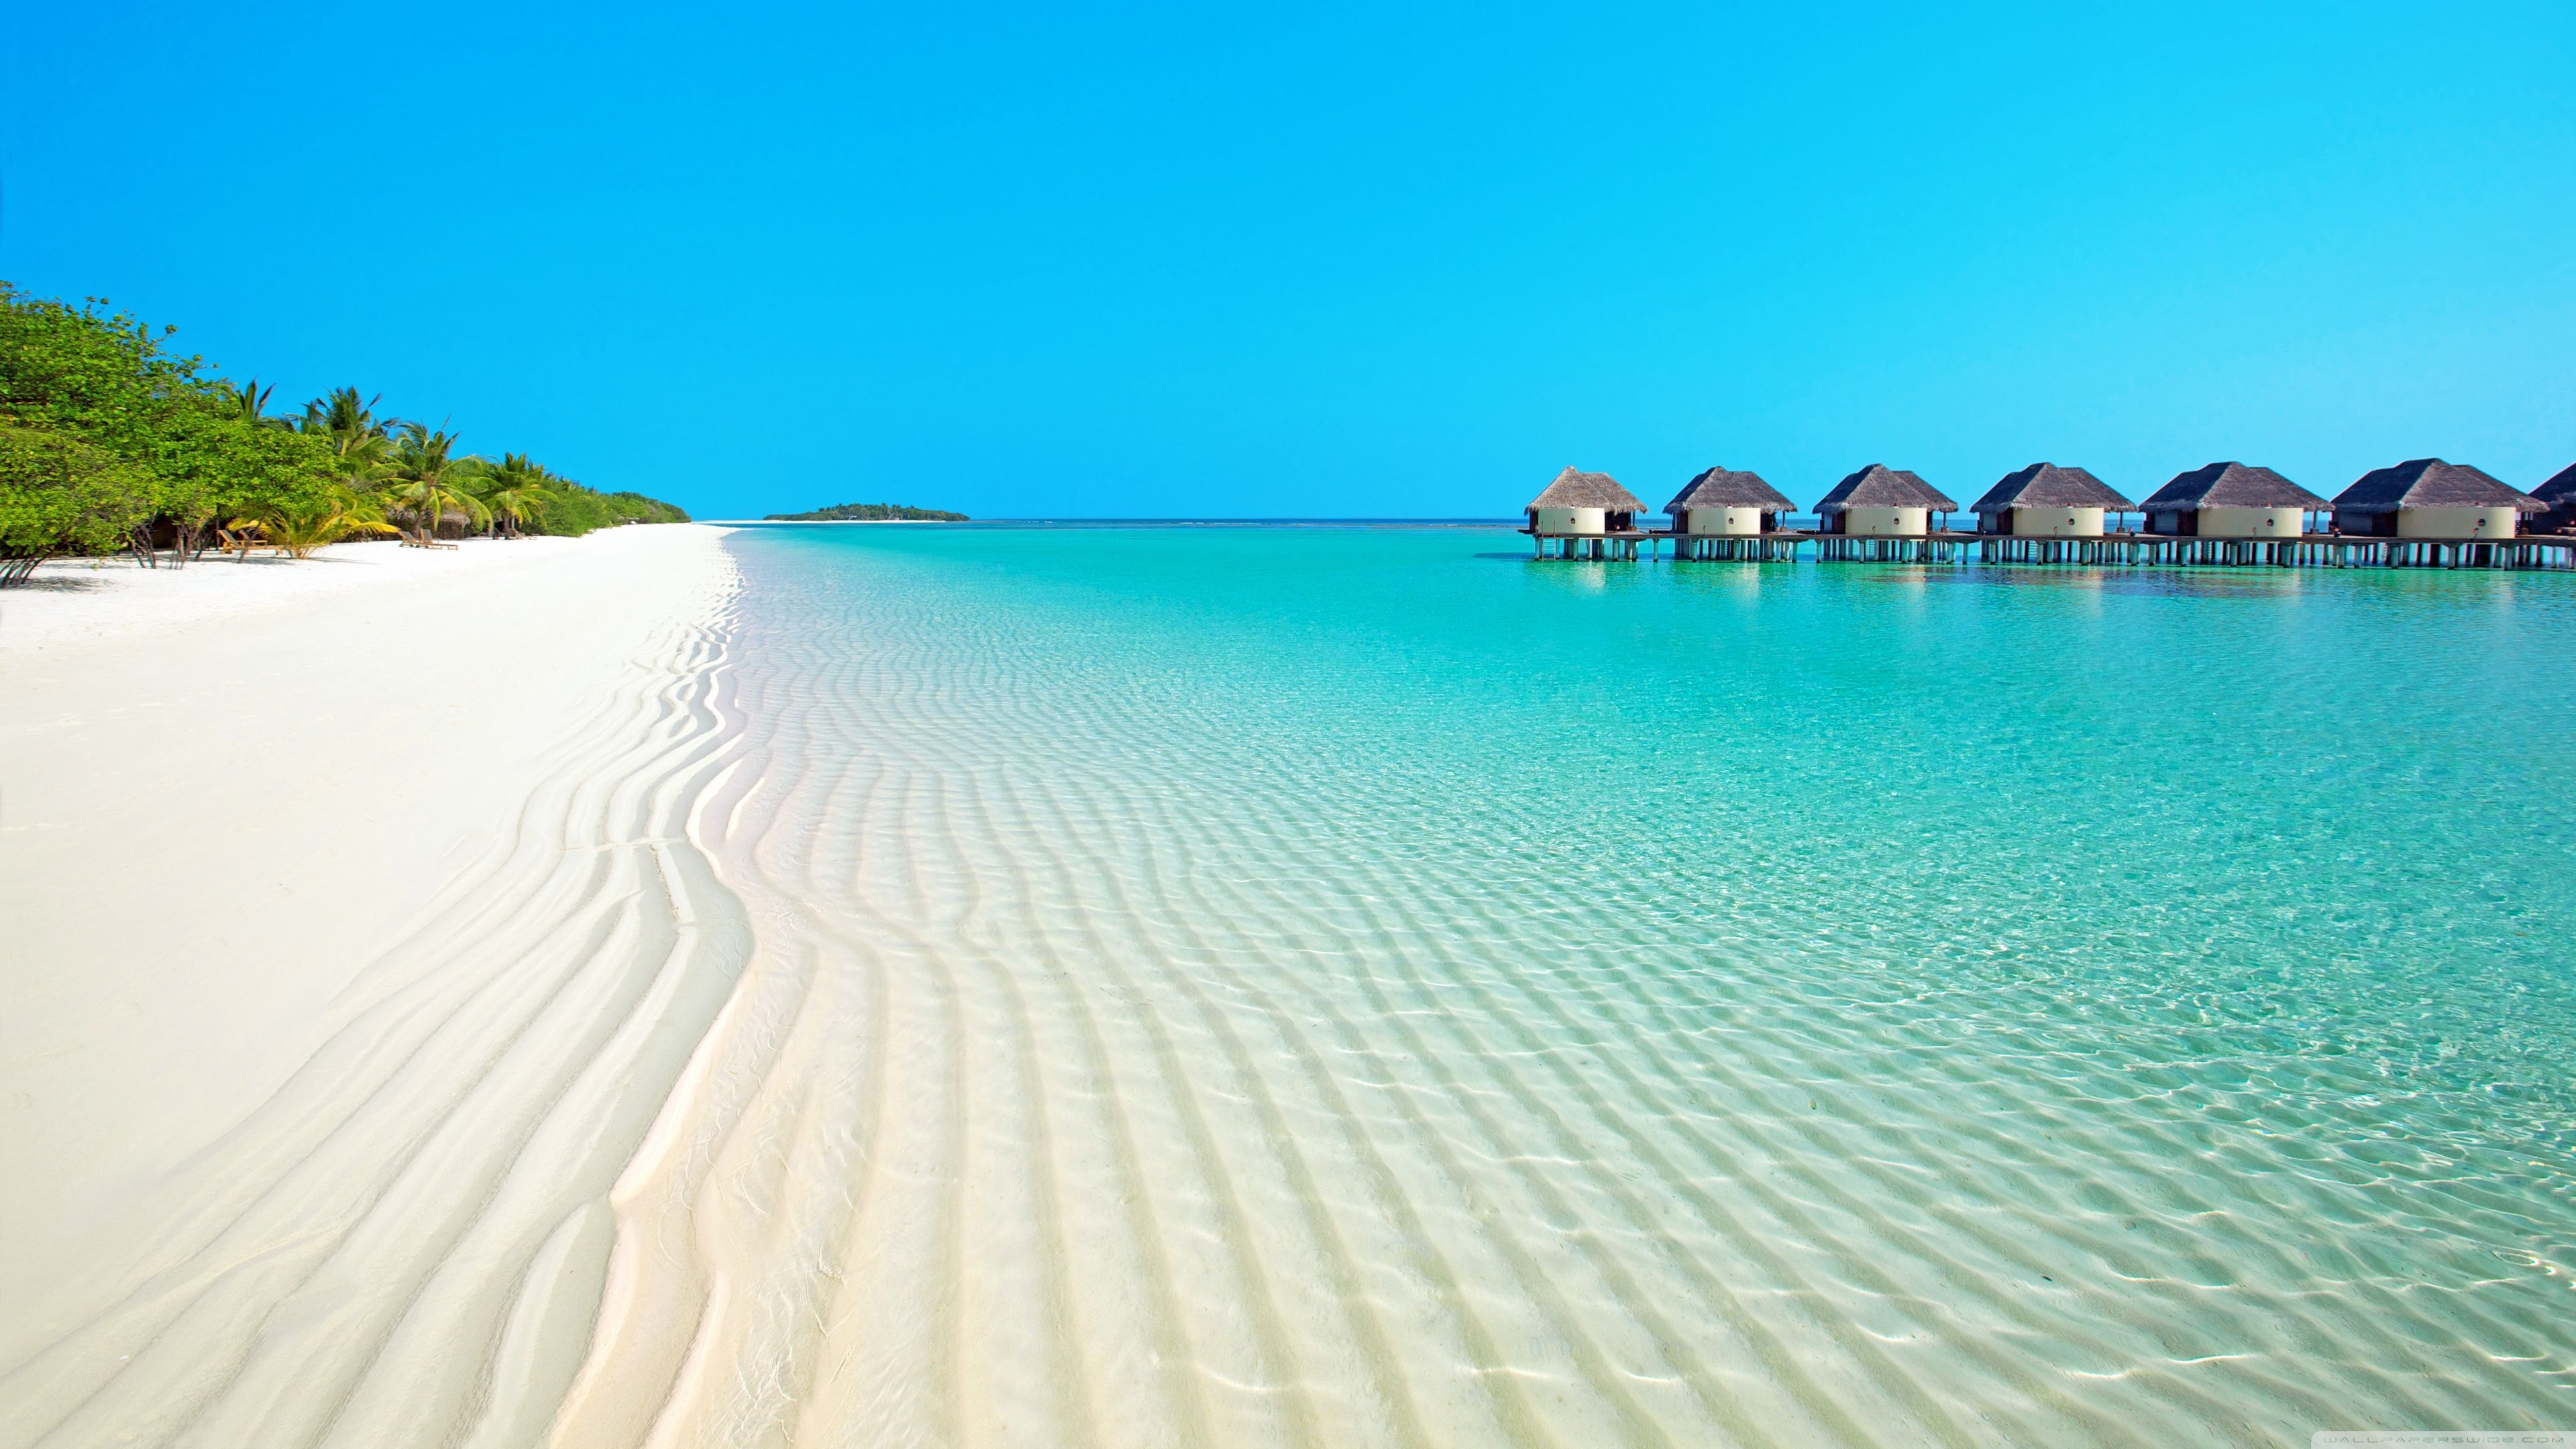 4k Ultra Hd Beach Wallpapers Top Free 4k Ultra Hd Beach Backgrounds Wallpaperaccess Beach Wallpaper Summer Facebook Cover Photos Beach Background Images